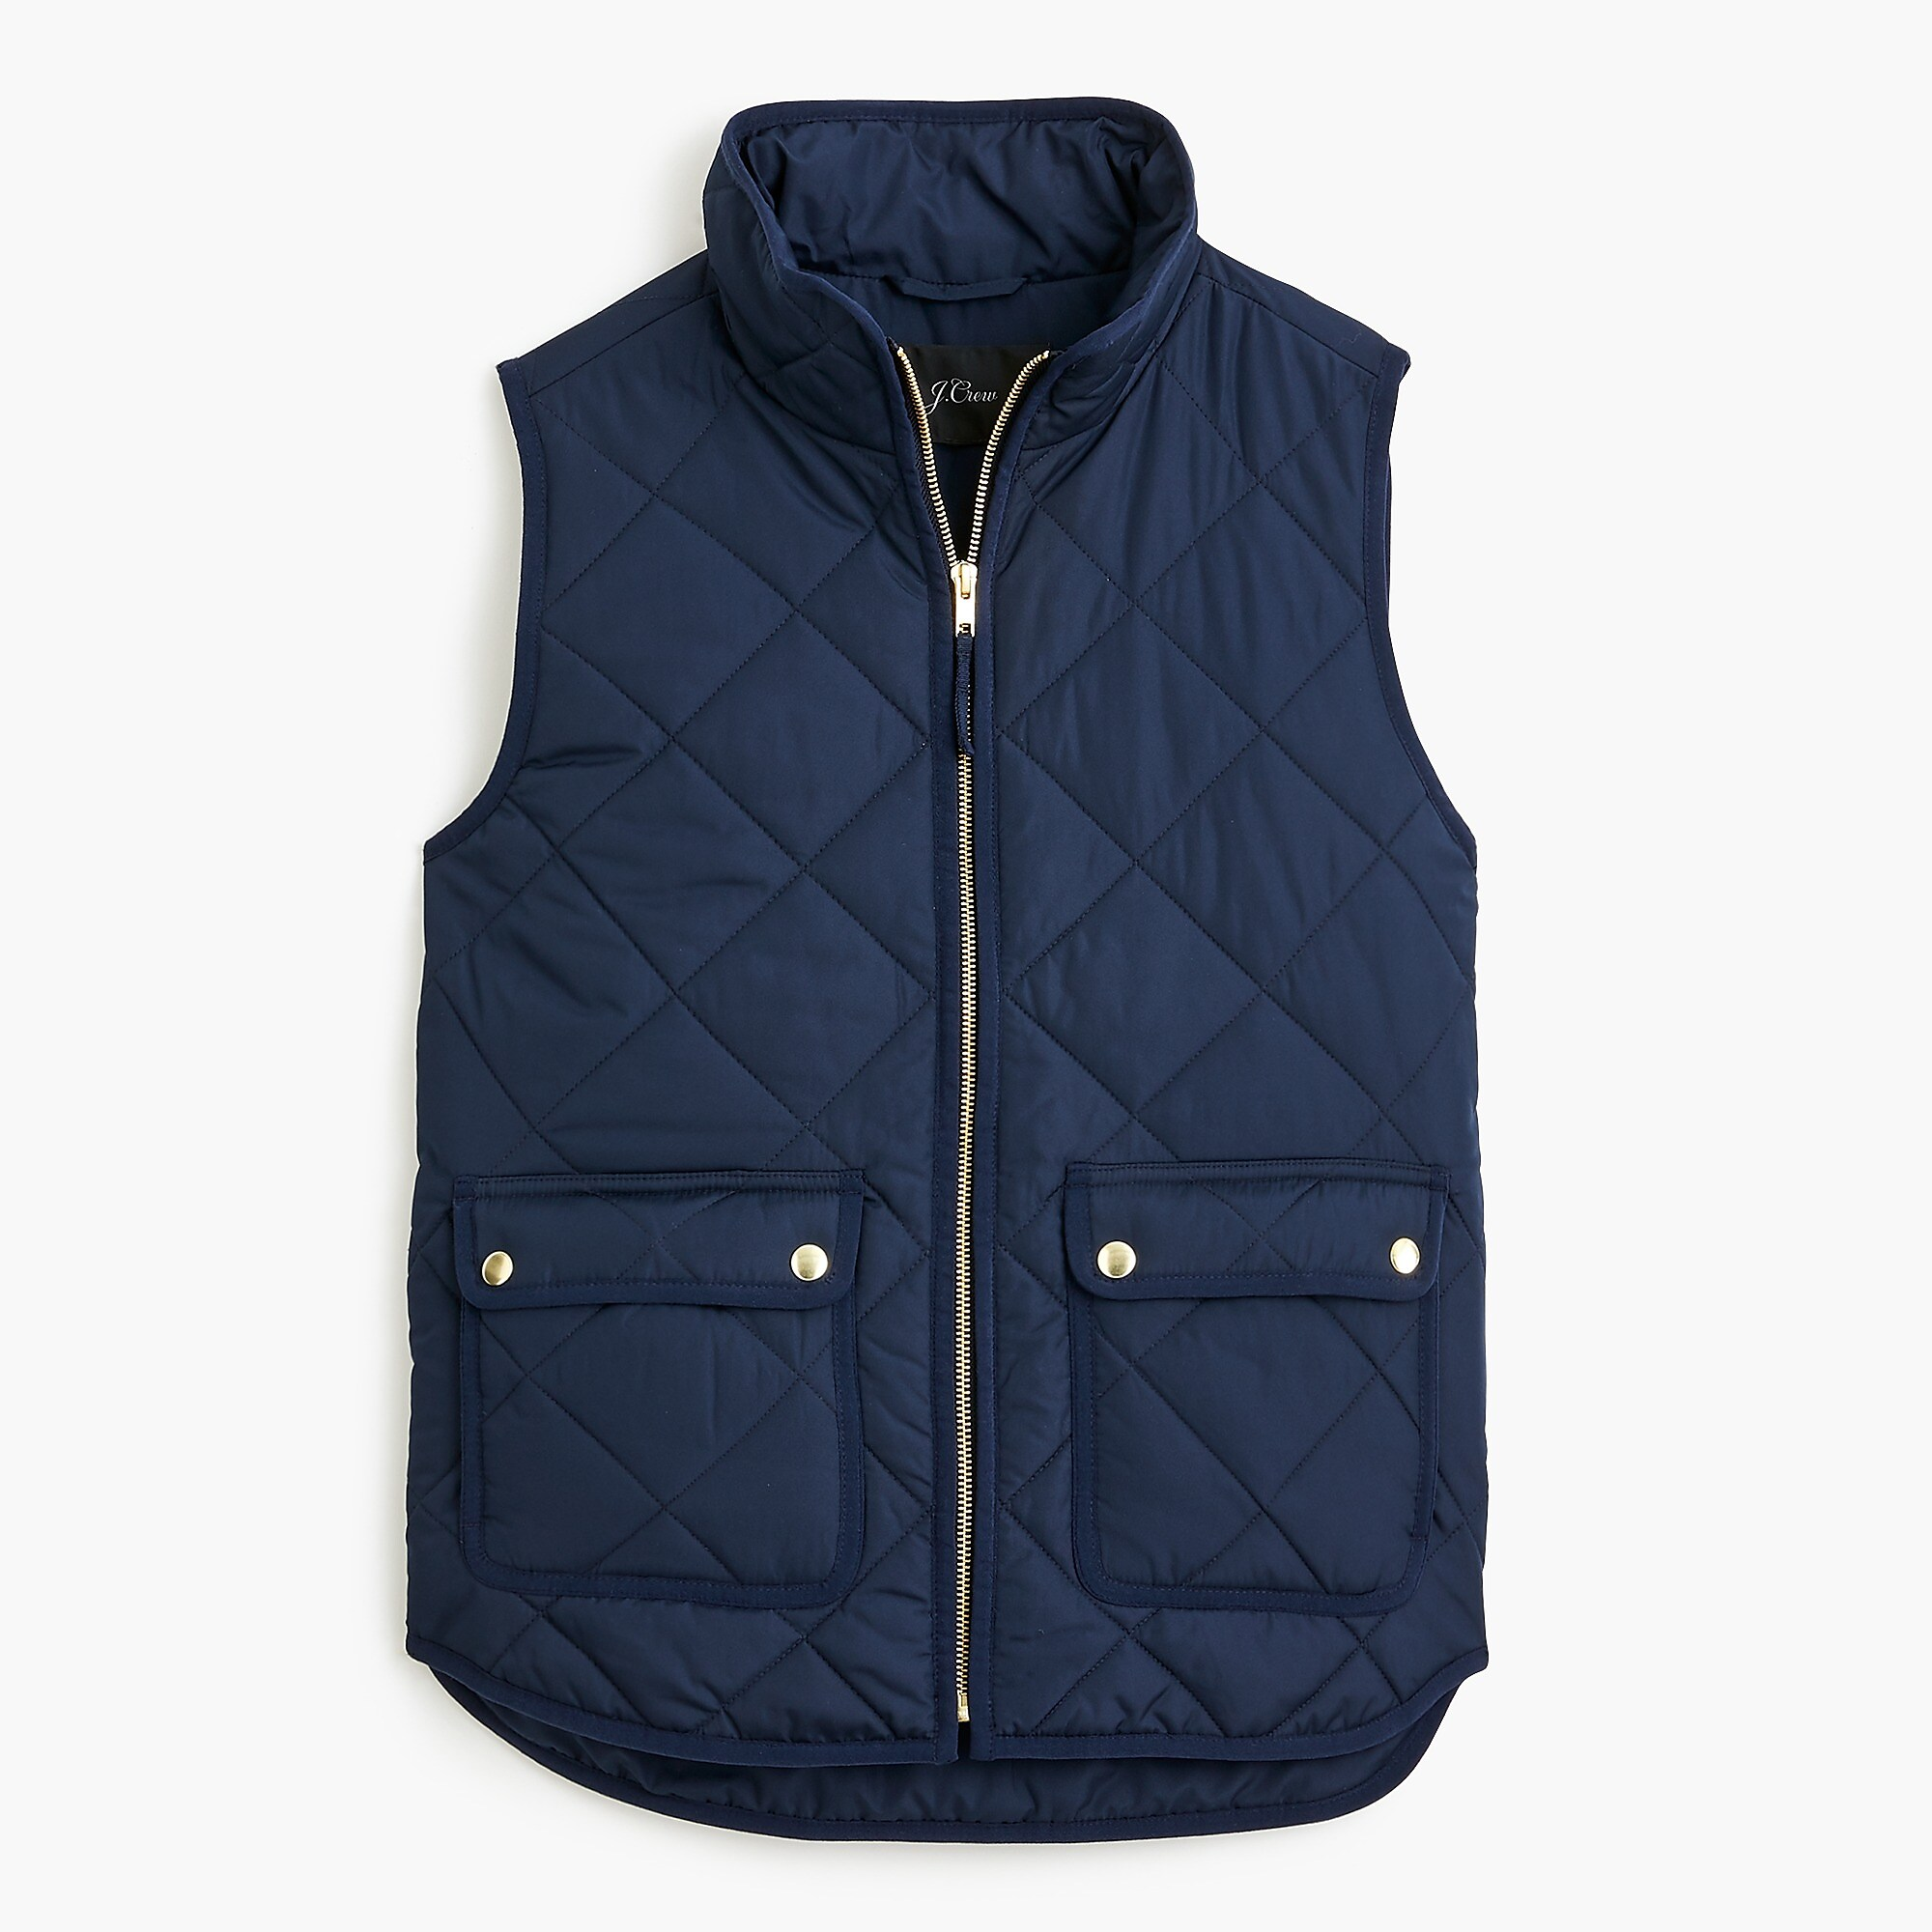 Navy Blue Excursion Vest